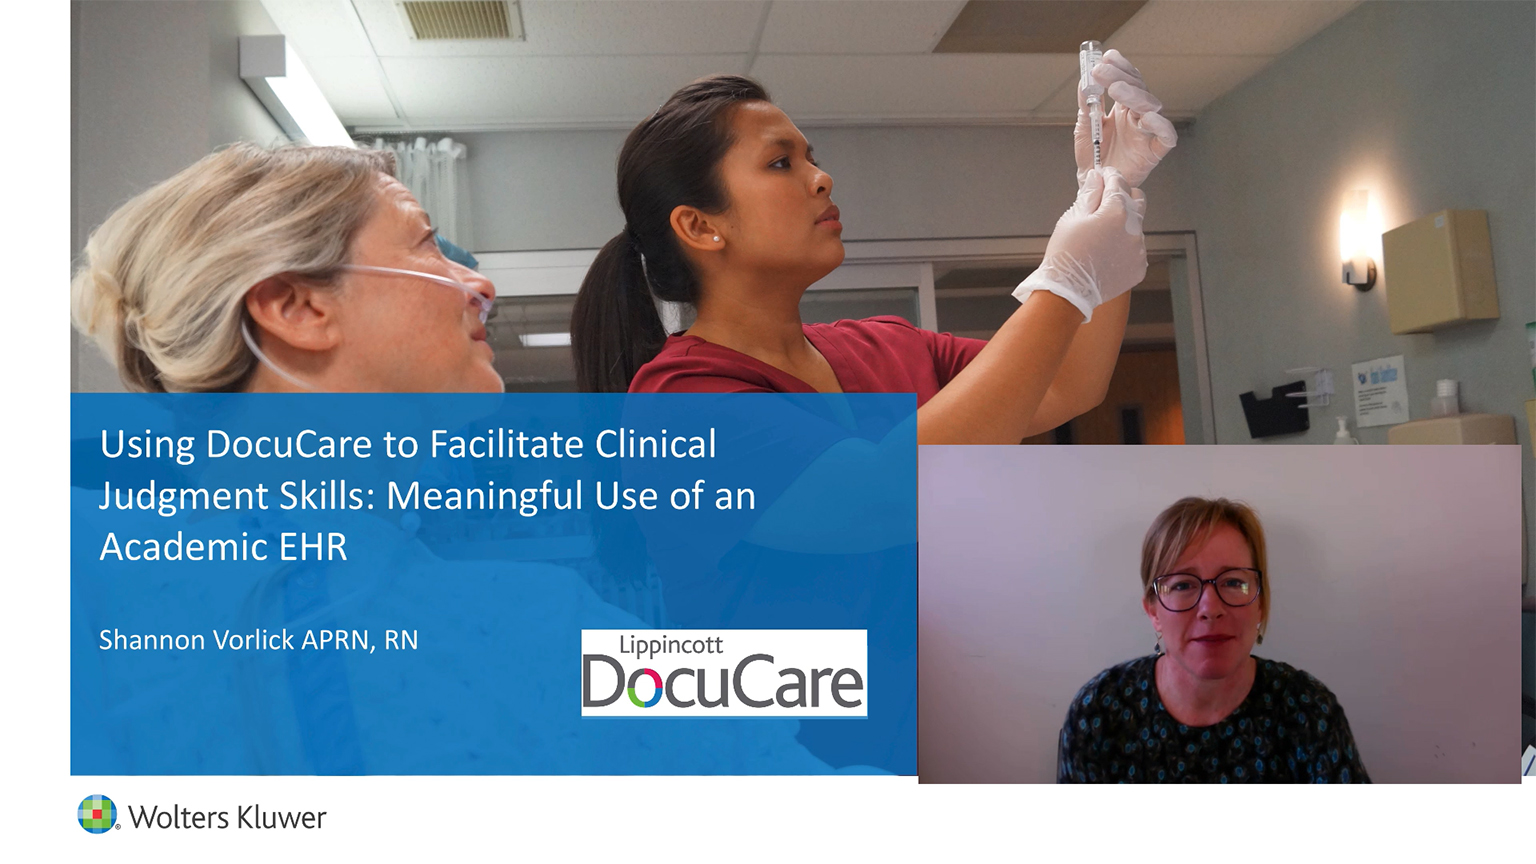 Using DocuCare to facilitate clinical judgment skills: Meaningful use of an academic EHR